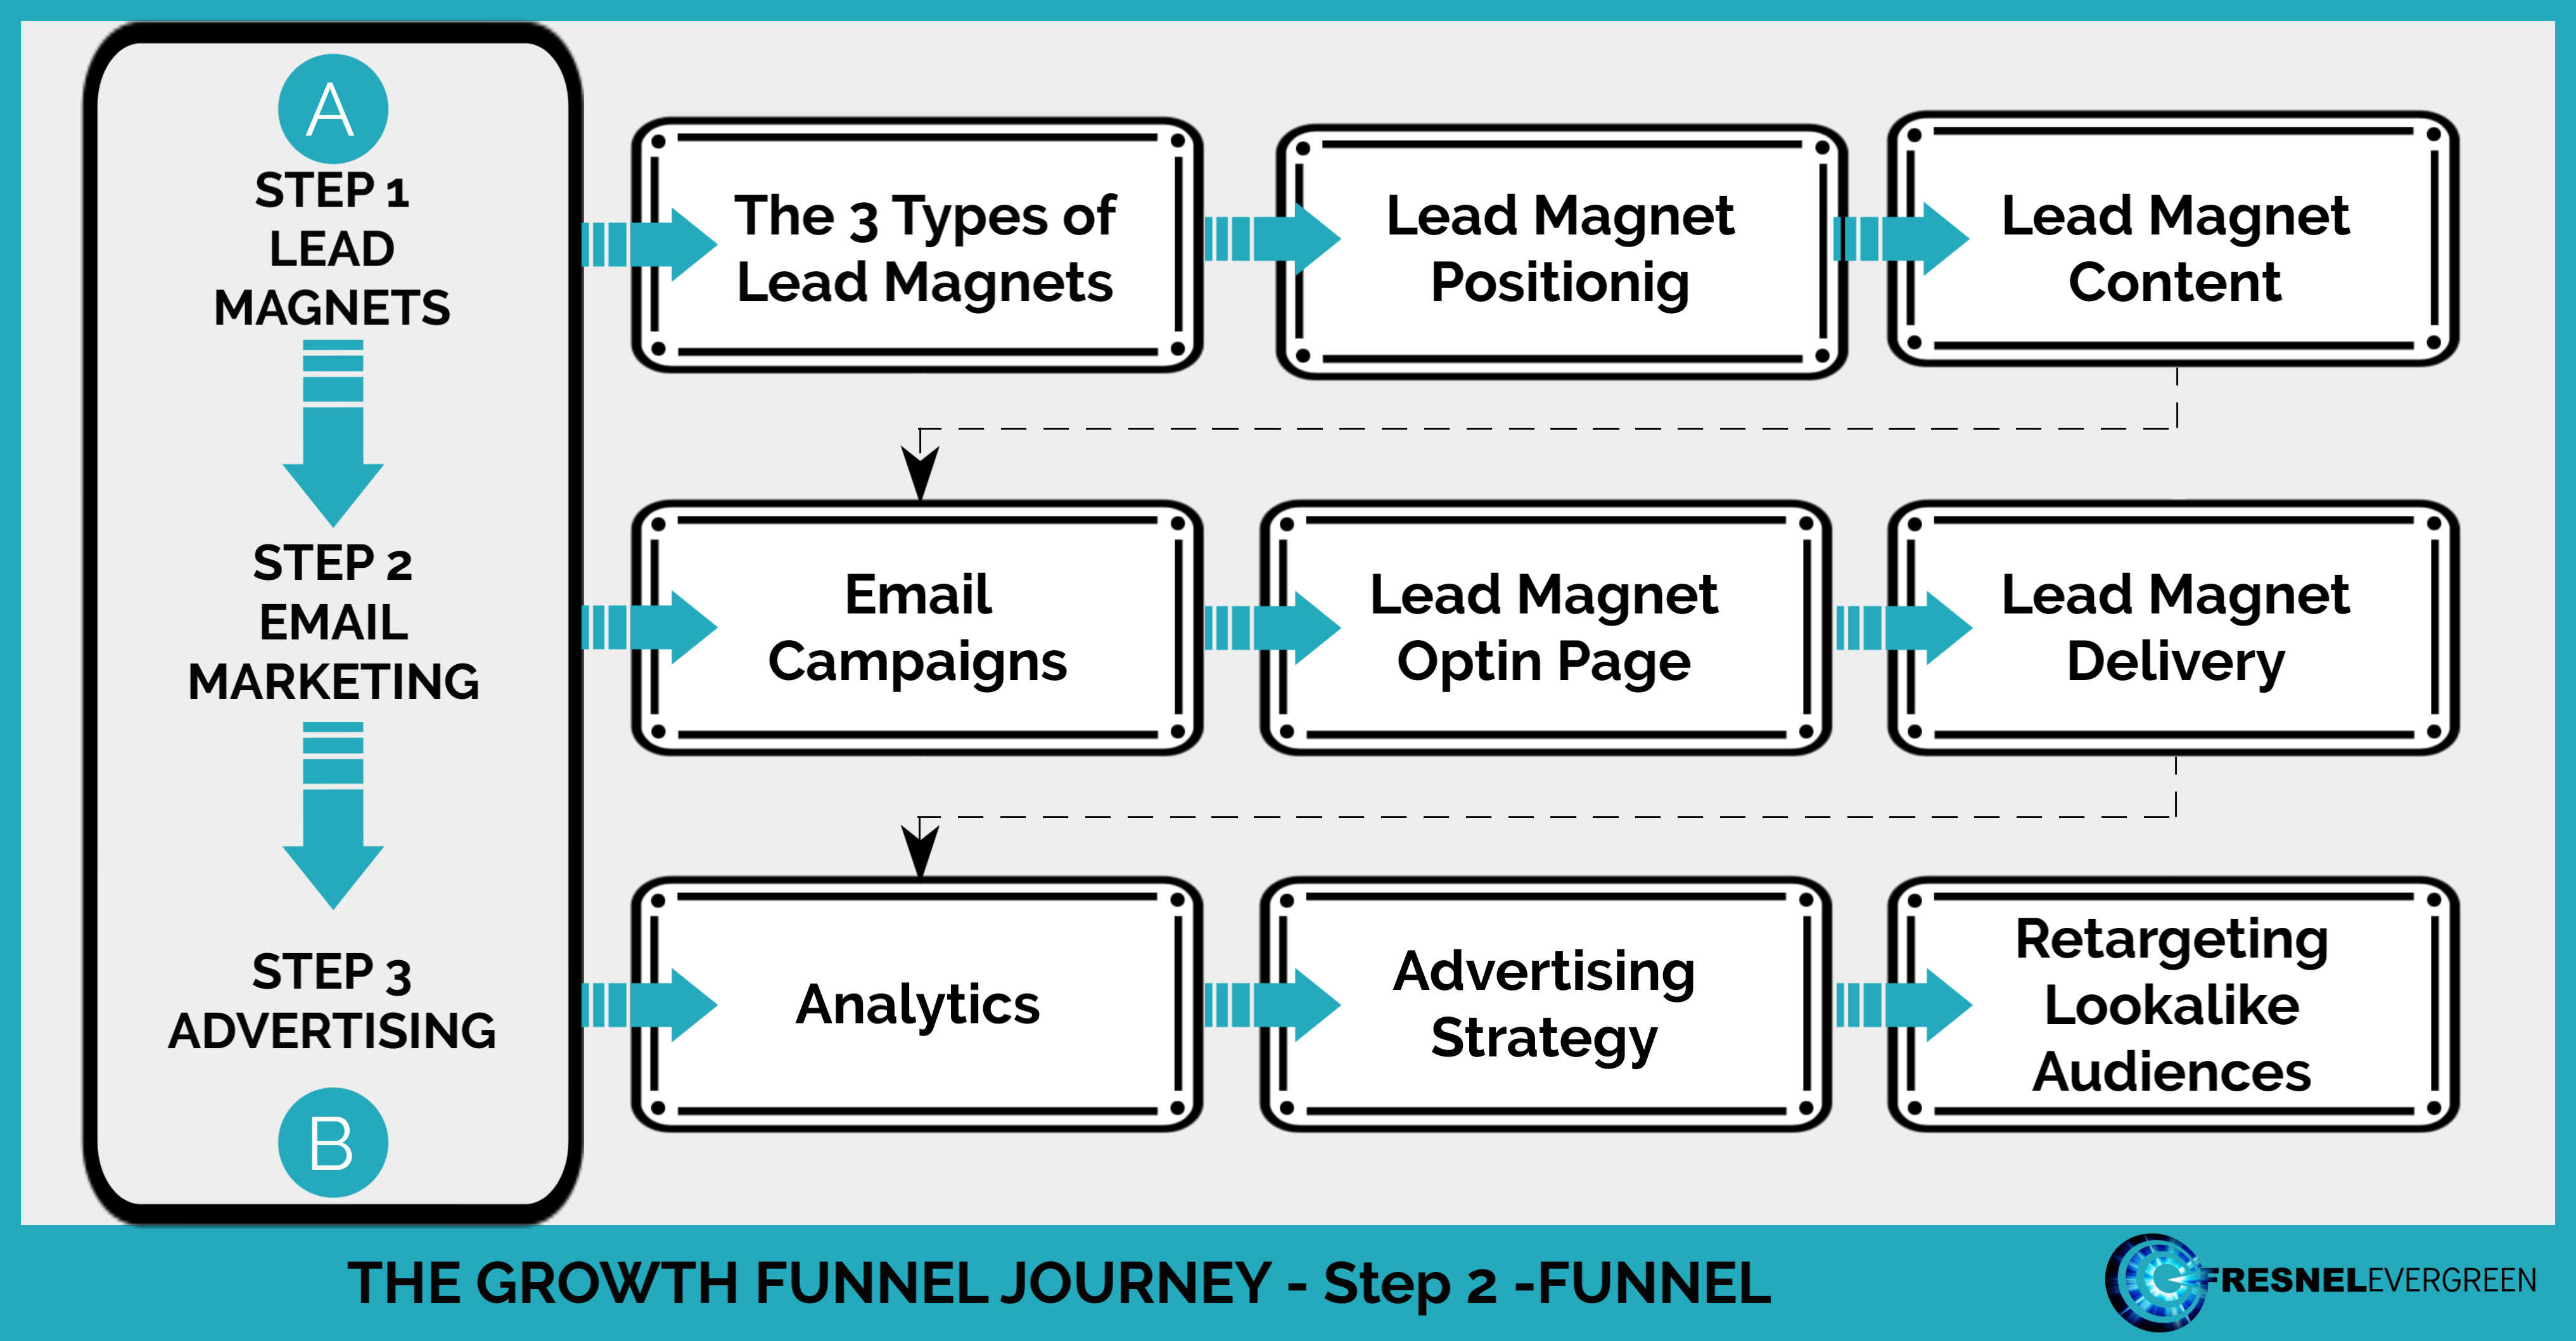 Step 2 = FUNNEL Map